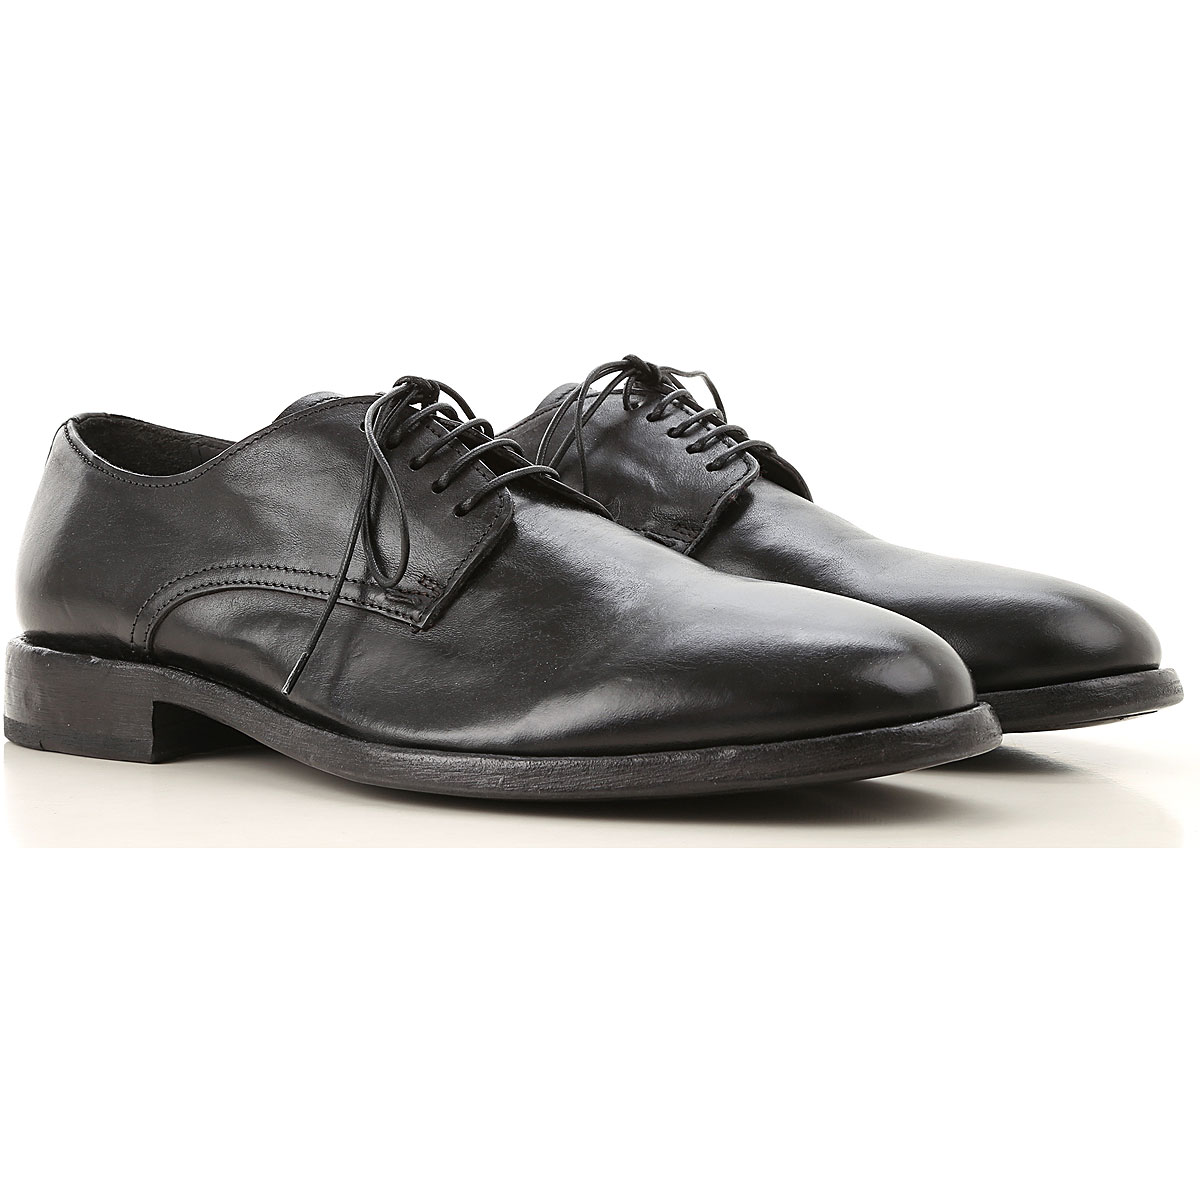 Moma Lace Up Shoes for Men Oxfords, Derbies and Brogues On Sale, Black, Leather, 2019, 8 9